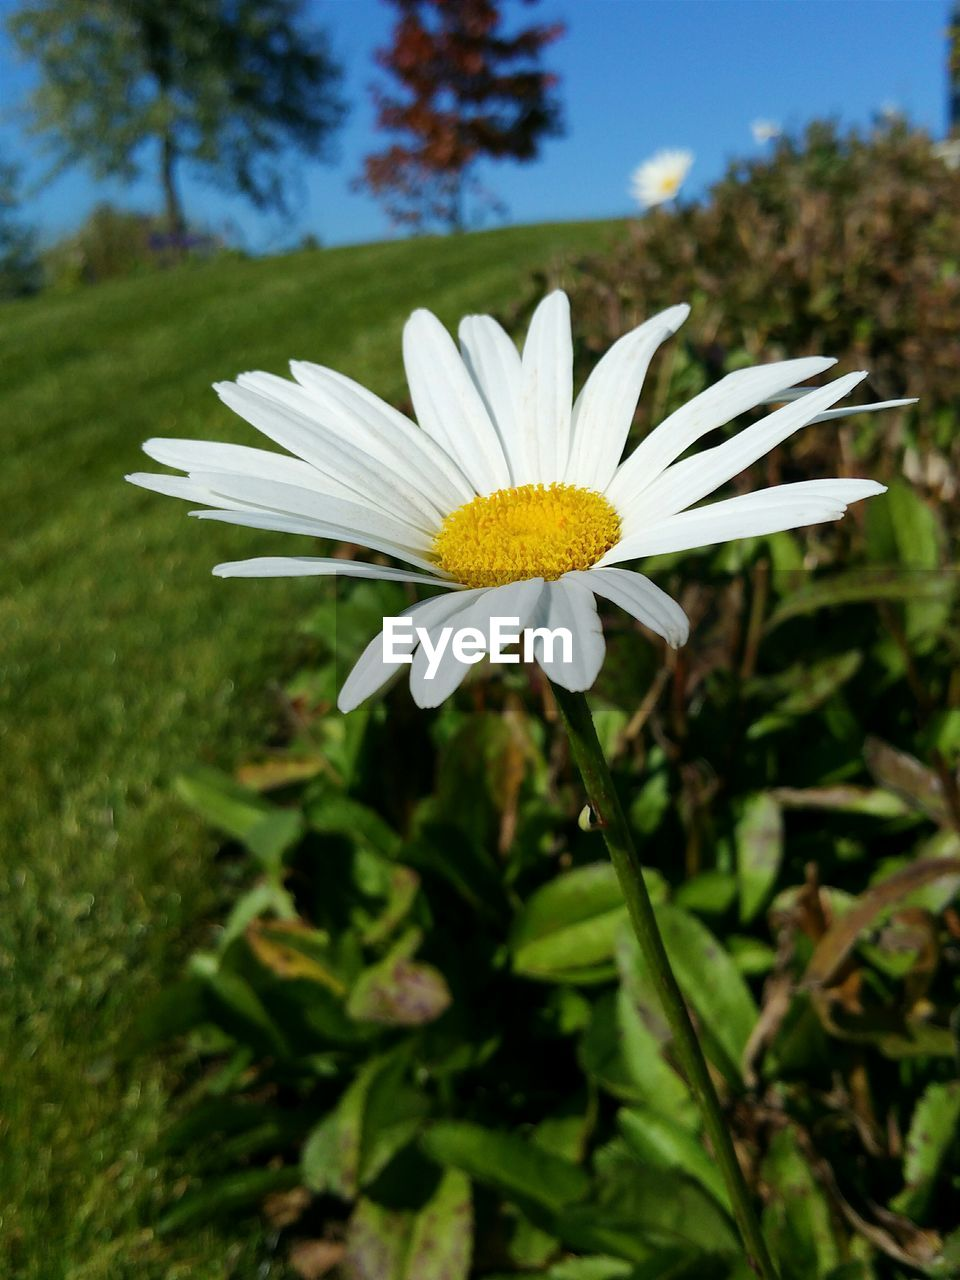 flower, petal, fragility, nature, growth, beauty in nature, flower head, white color, freshness, plant, focus on foreground, day, blooming, close-up, outdoors, no people, osteospermum